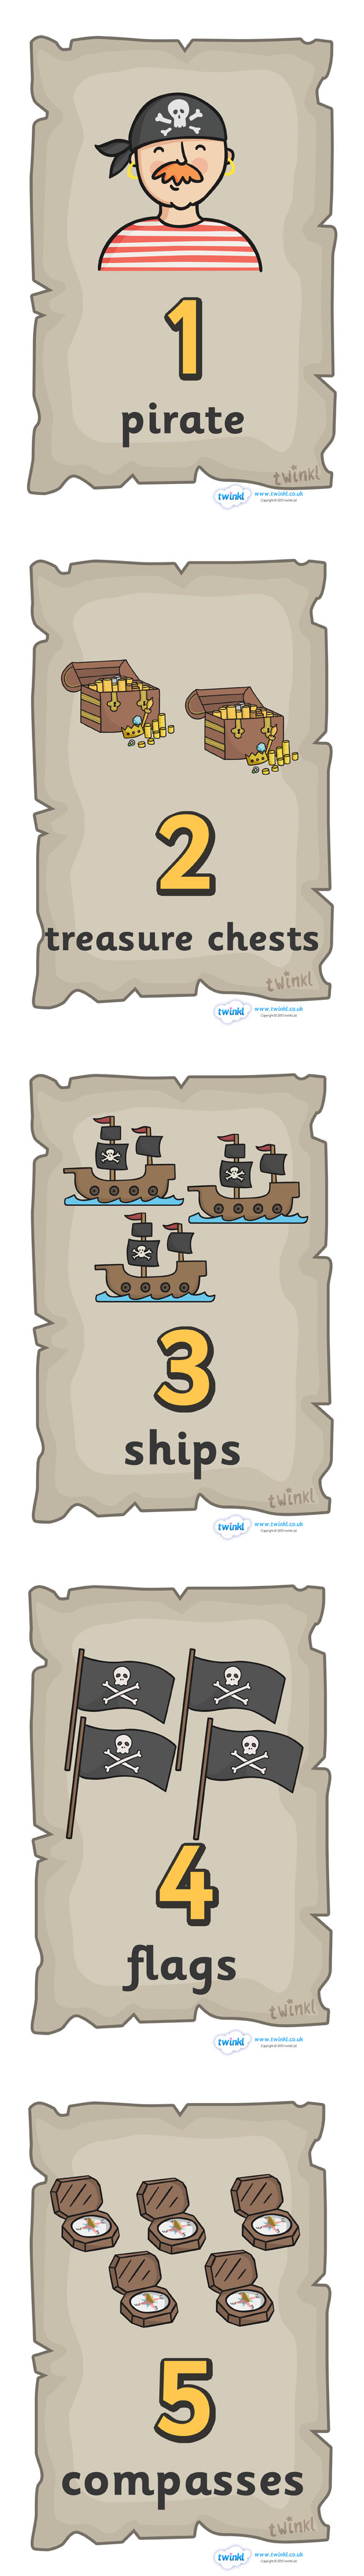 Twinkl Resources >> Pirate Number Posters >> Classroom printables for Pre-School, Kindergarten, Elementary School and beyond! Pirates, Numbers, Math